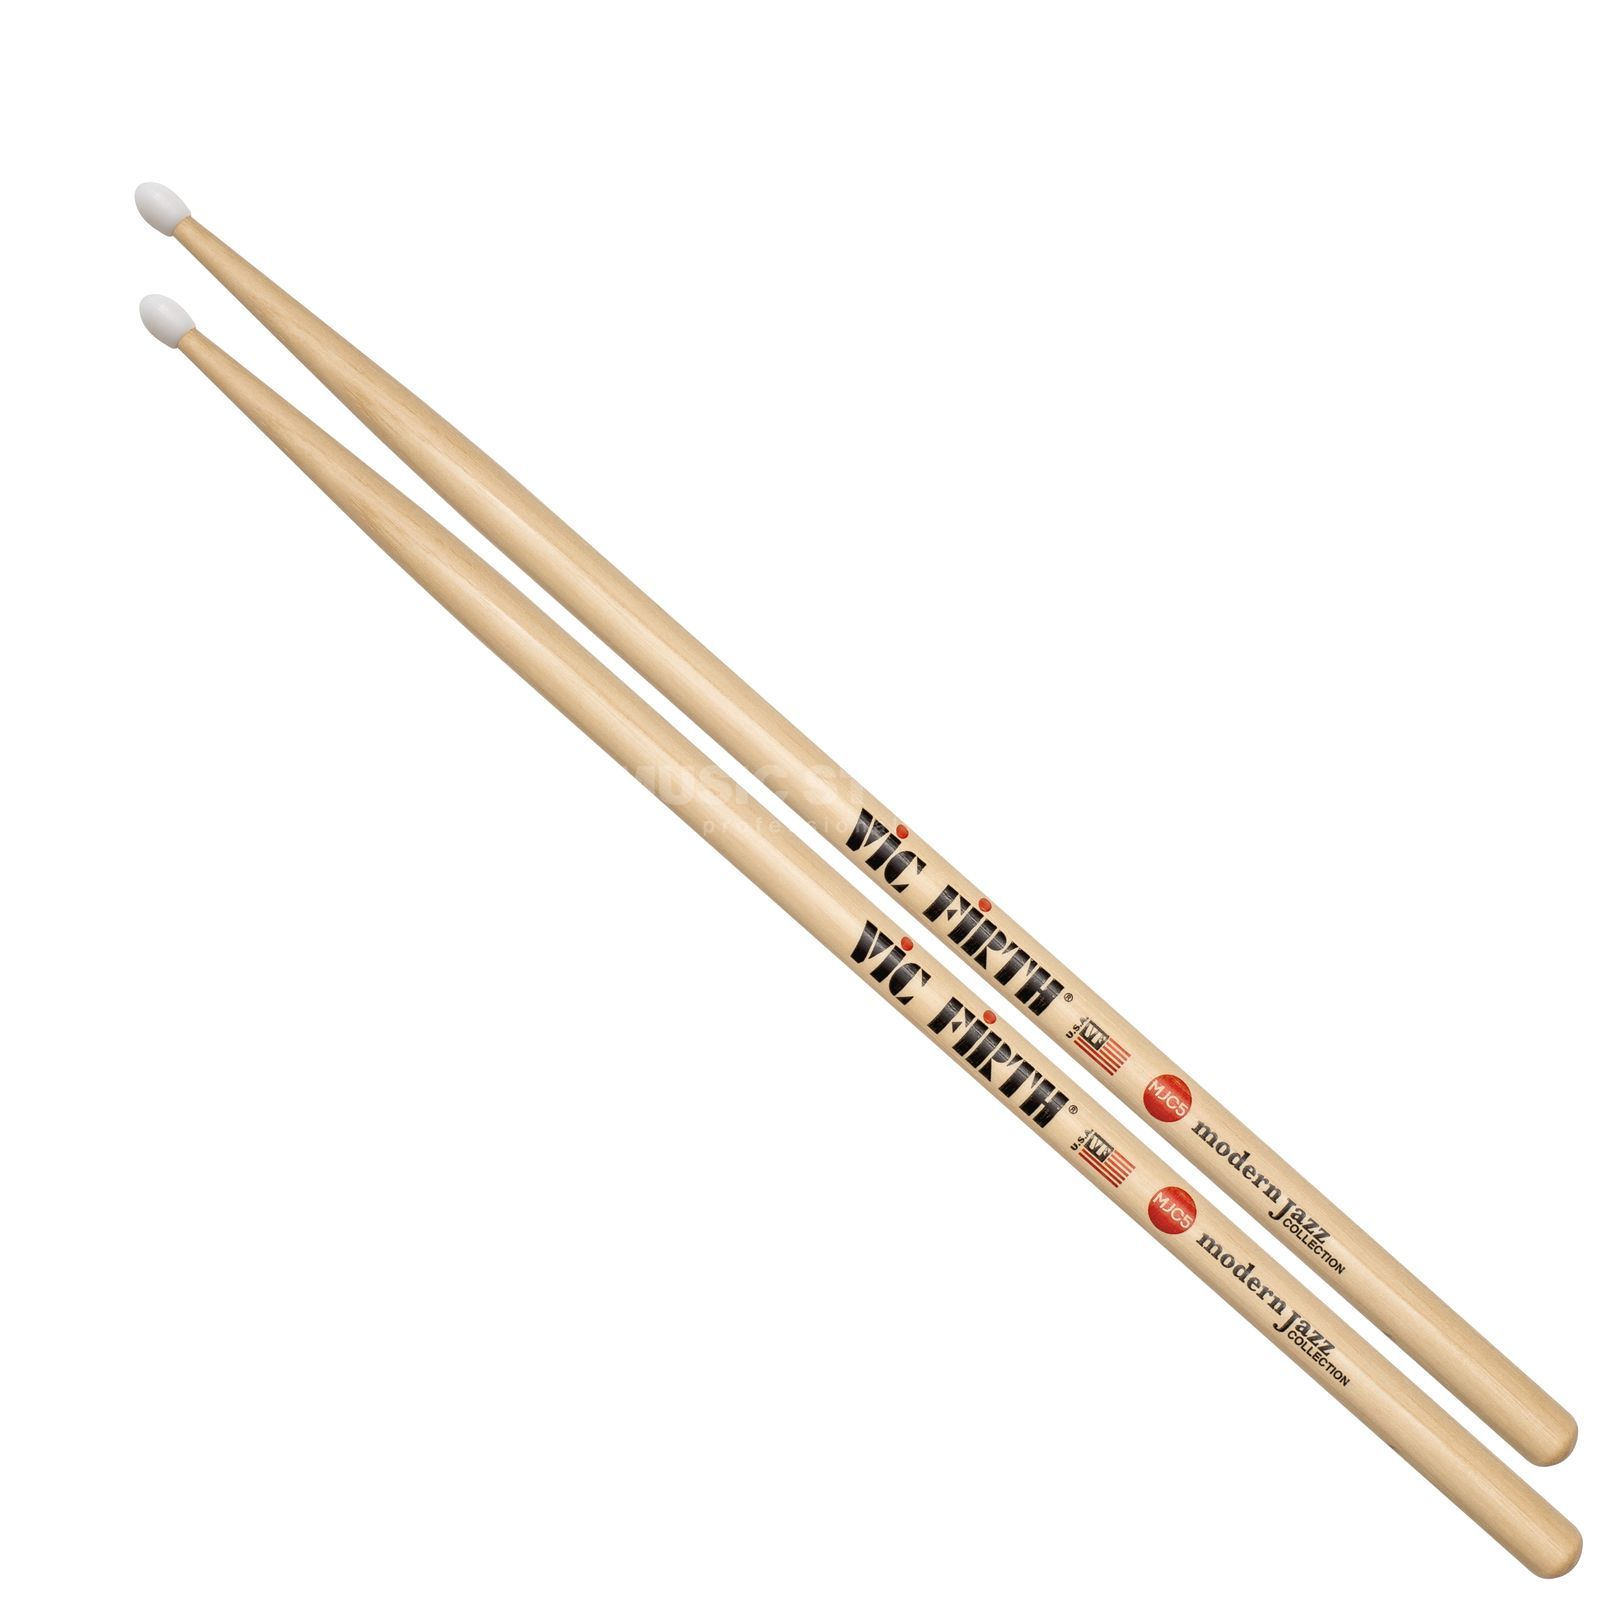 Vic-Firth Modern Jazz Sticks MJC5, Nylon Tip Product Image